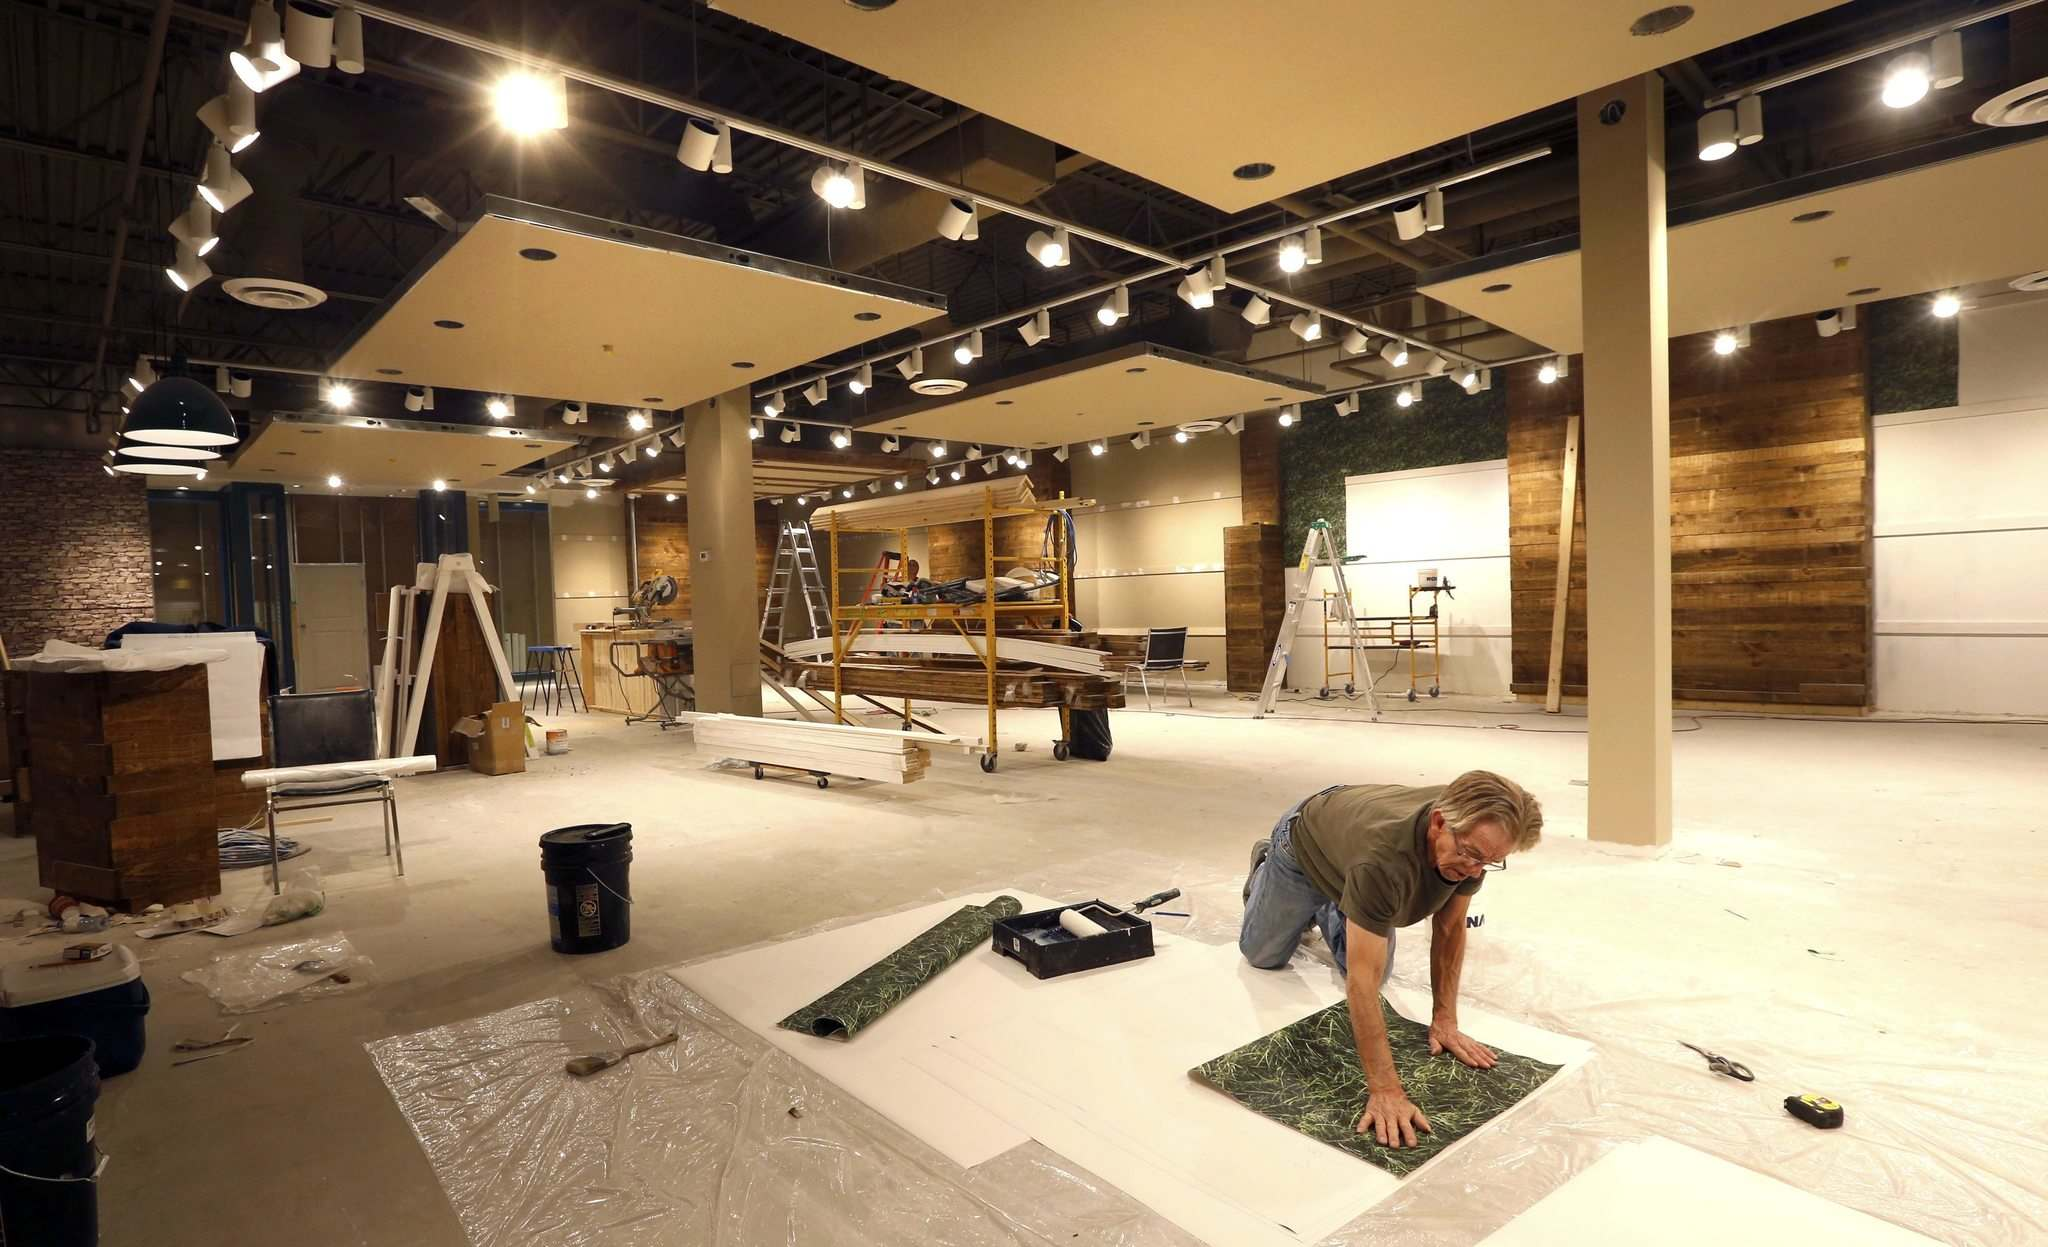 WAYNE GLOWACKI / WINNIPEG FREE PRESS</p><p>Peter Deyong prepares wallpaper for the new Mountain Warehouse store in Kildonan Place mall for next month&rsquo;s opening. Mountain Warehouse is a U.K.-based outdoor clothing chain.</p></p>